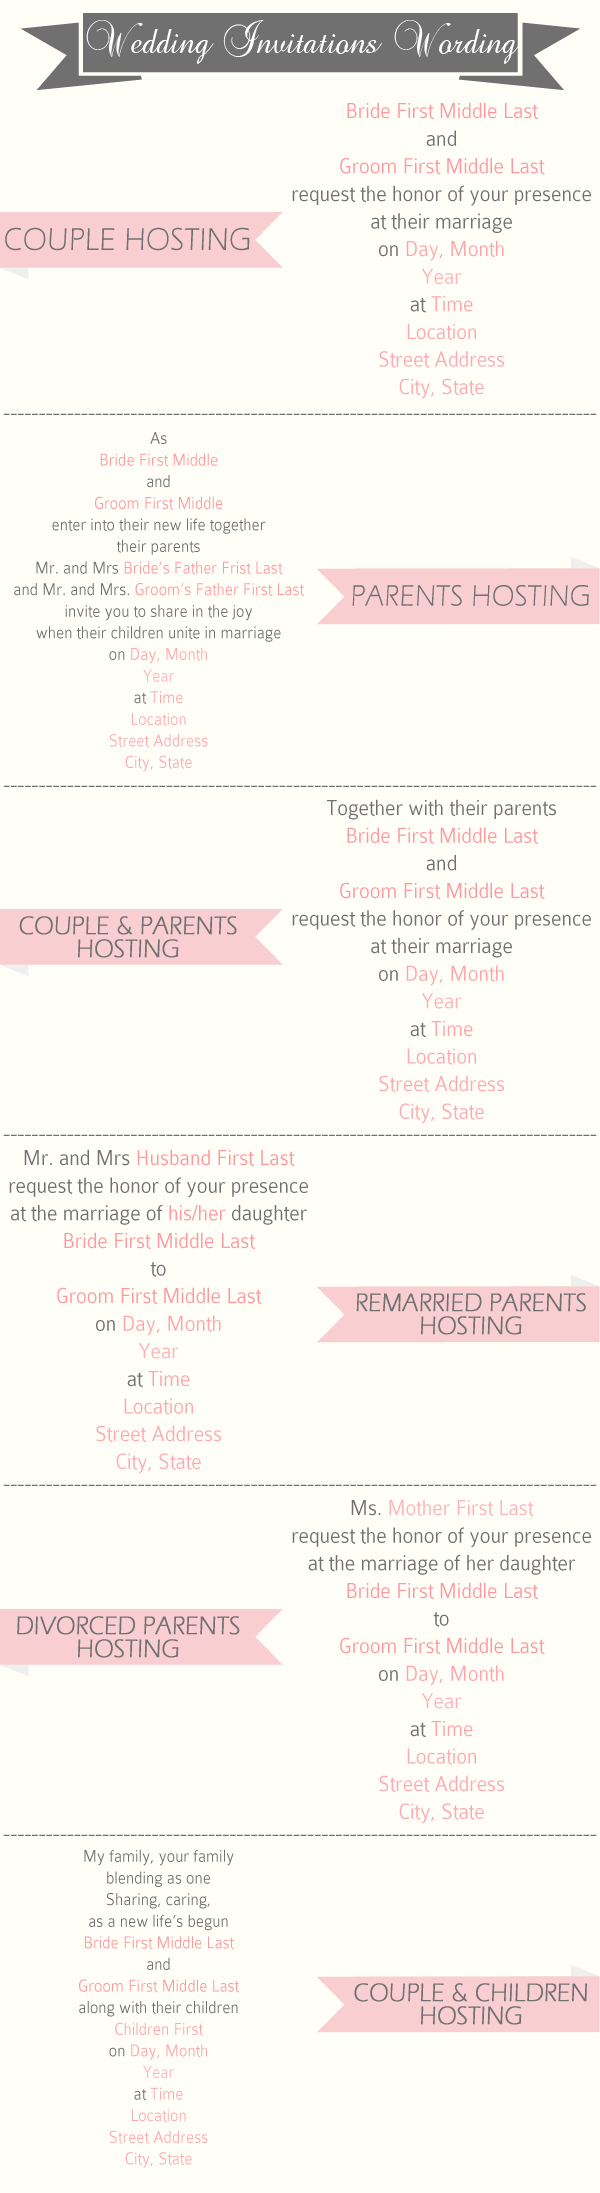 Wedding Invitation Wording Samples To